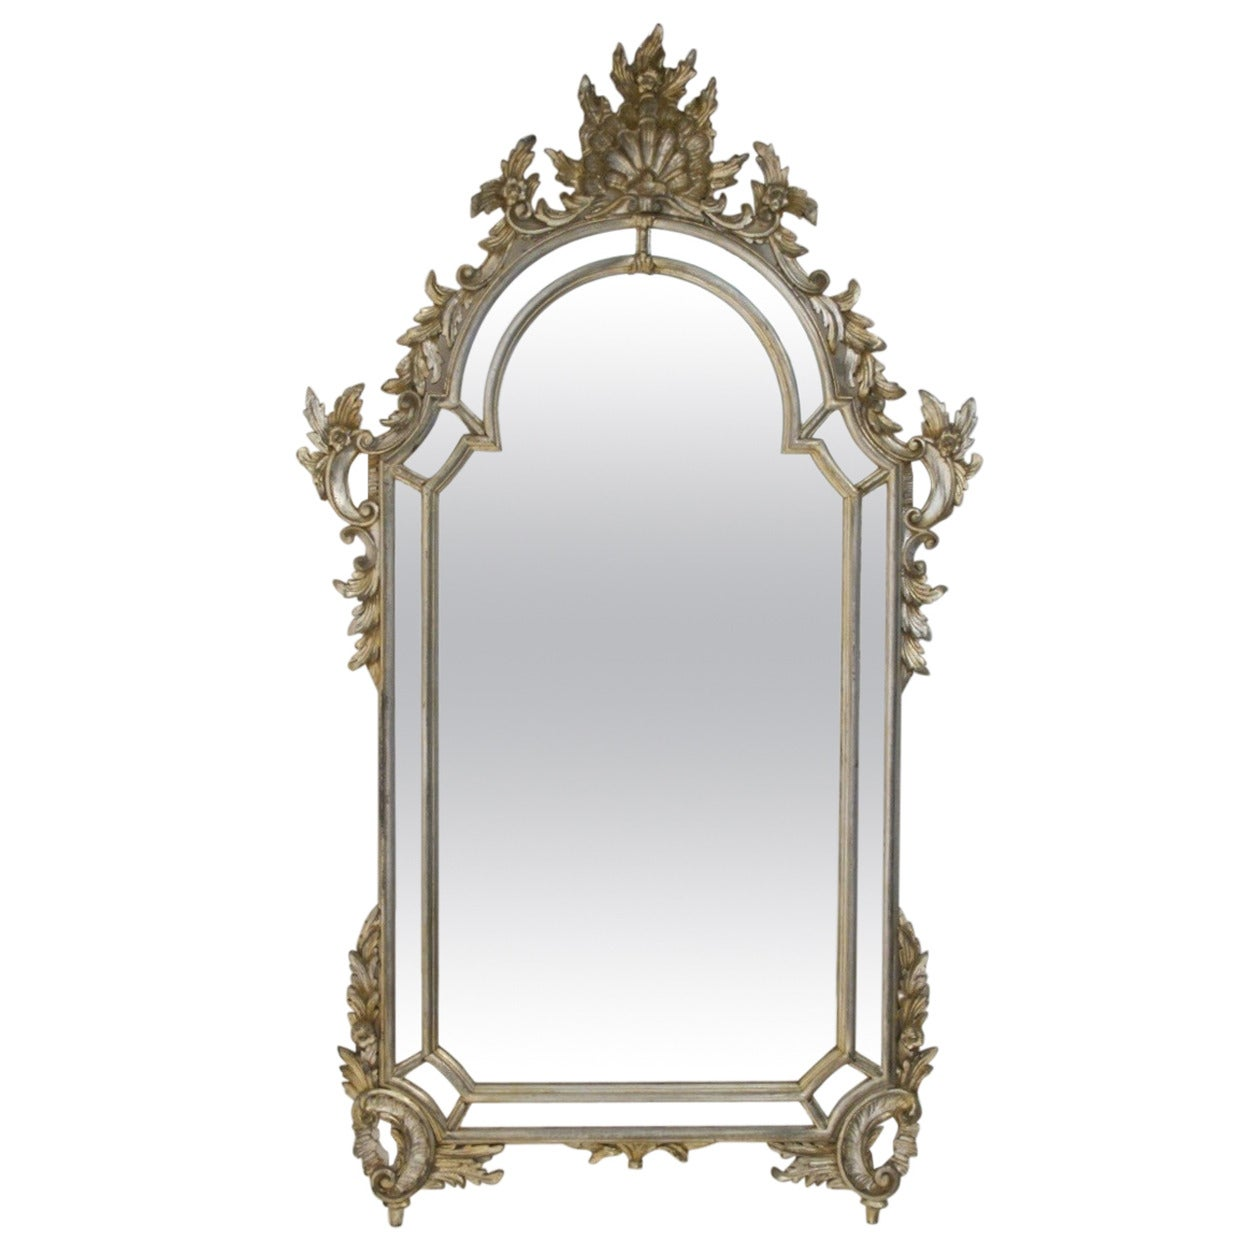 Italian silver gilt mirror at 1stdibs for What is a gilt mirror